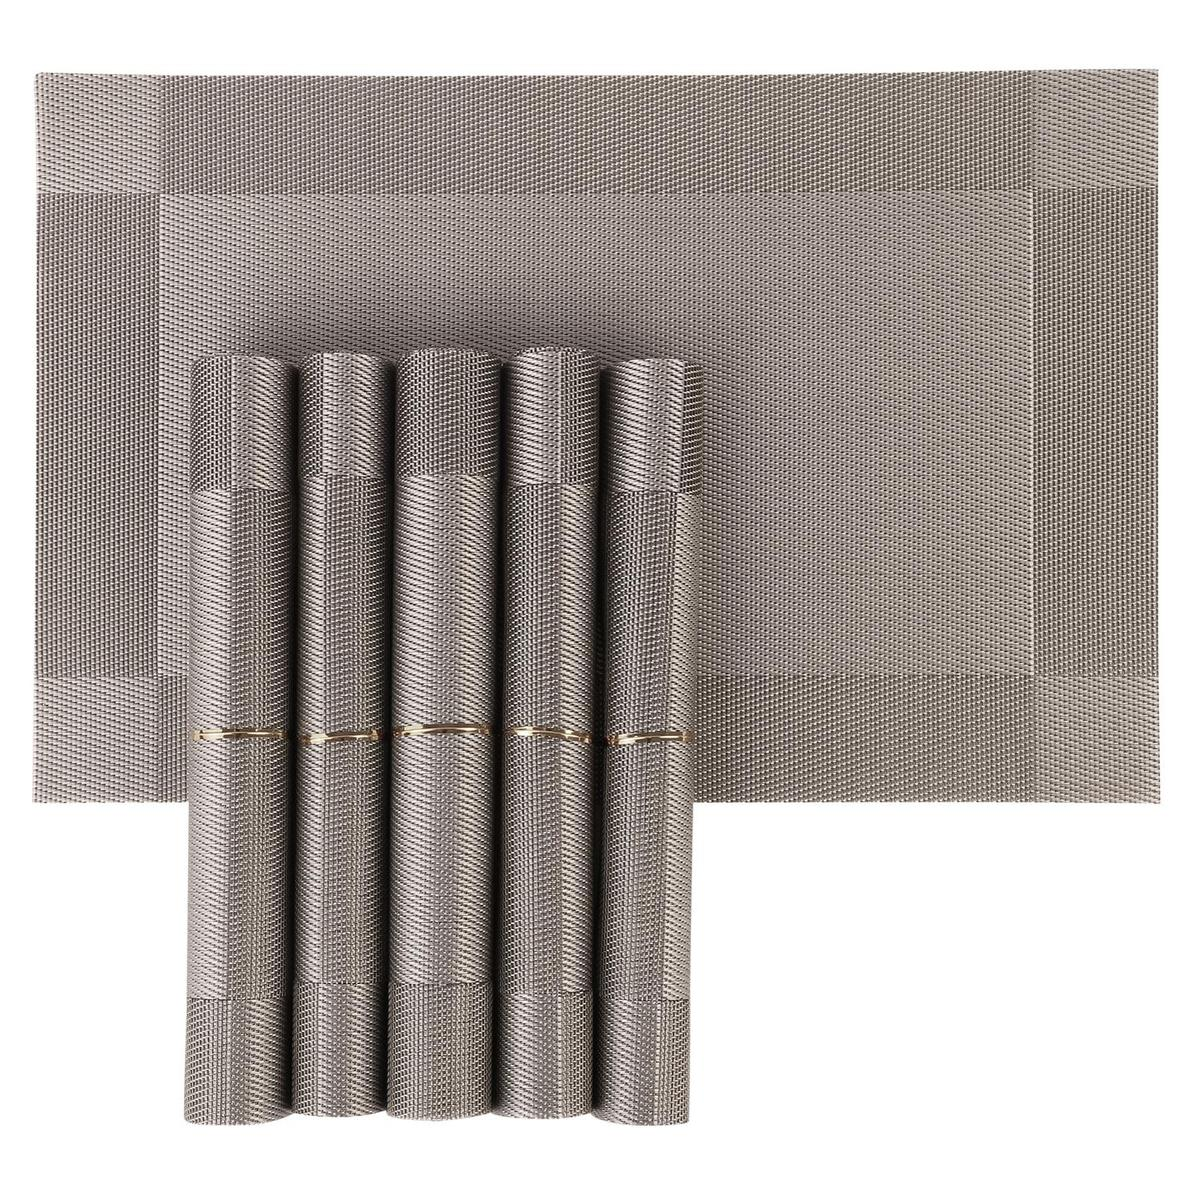 NFI essentials - PVC Dining Table Kitchen Placemats Set of 6 Mat (Silver)